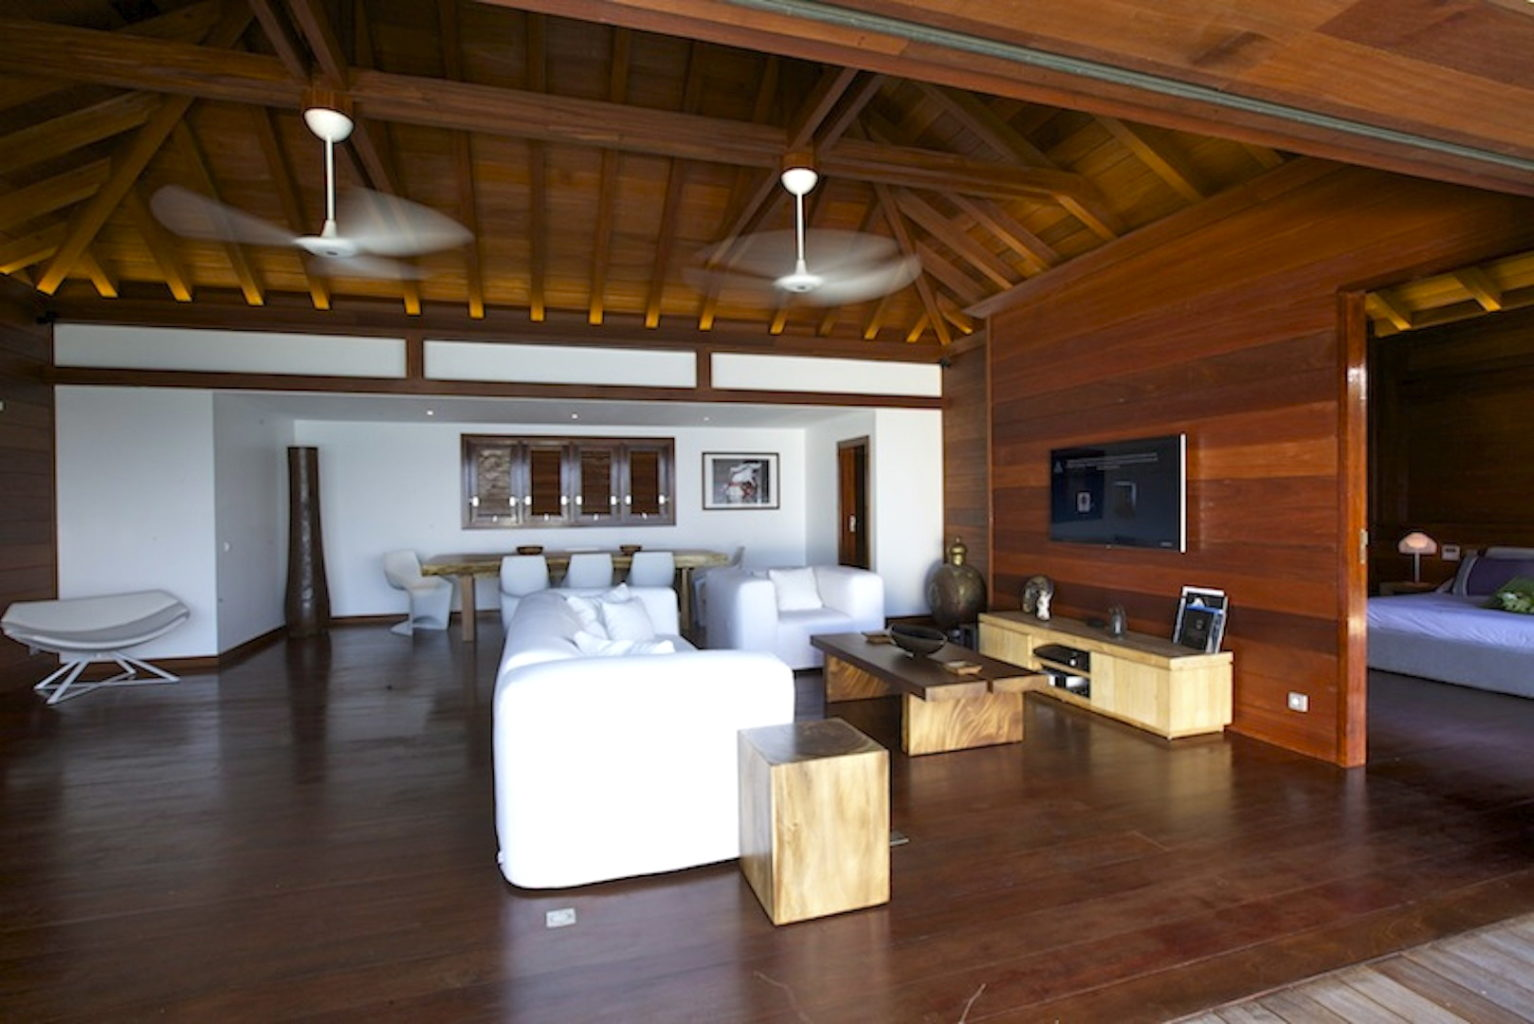 Villa What Else - Balinese Villa for Rent St Barth with Car Rental Included - Living room